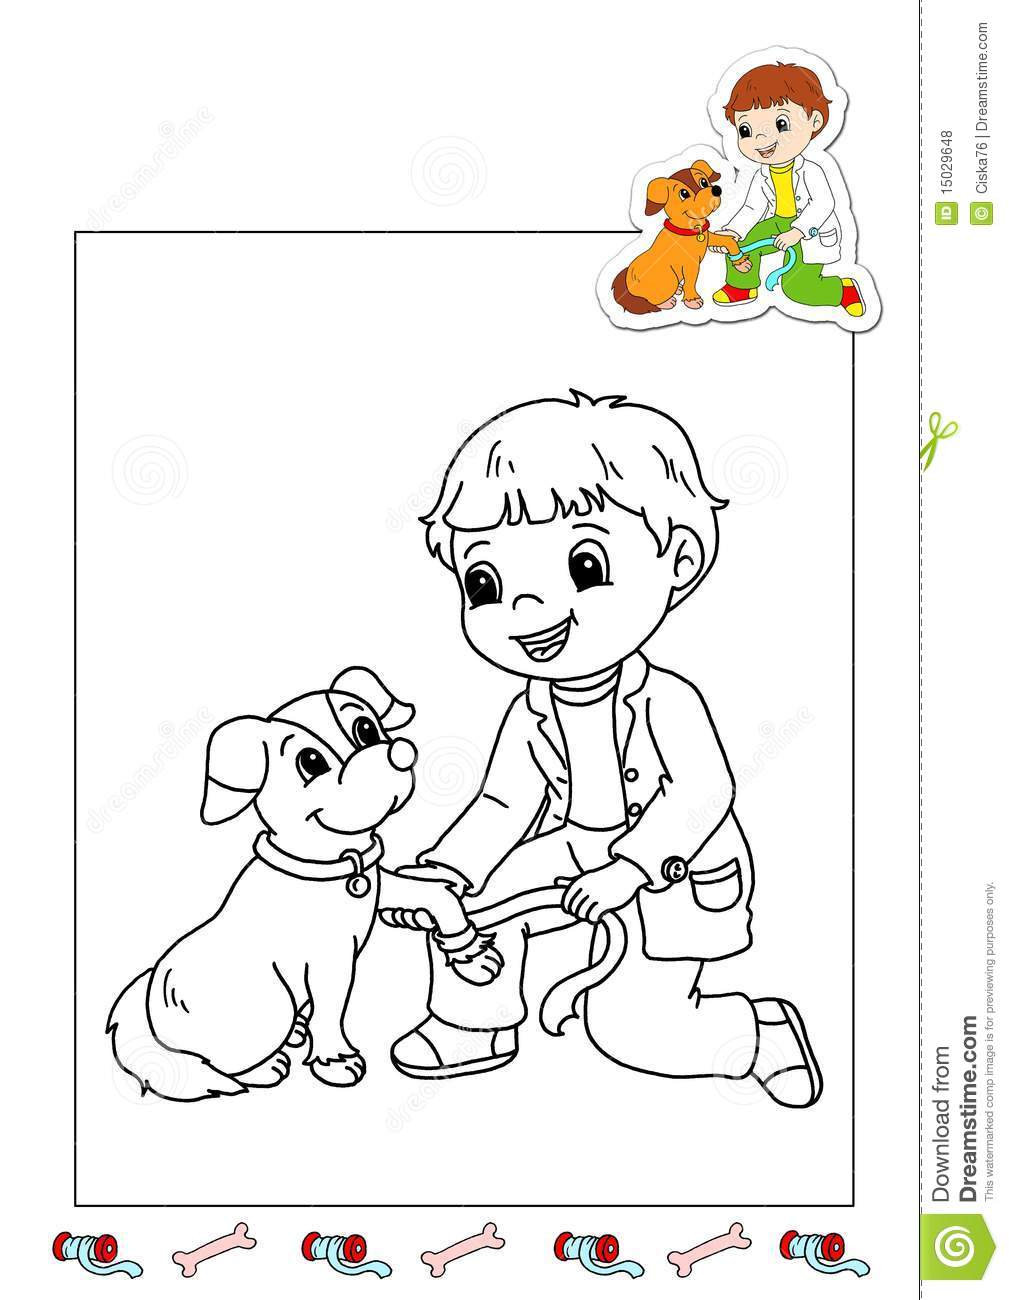 vet tools coloring pages - photo#5